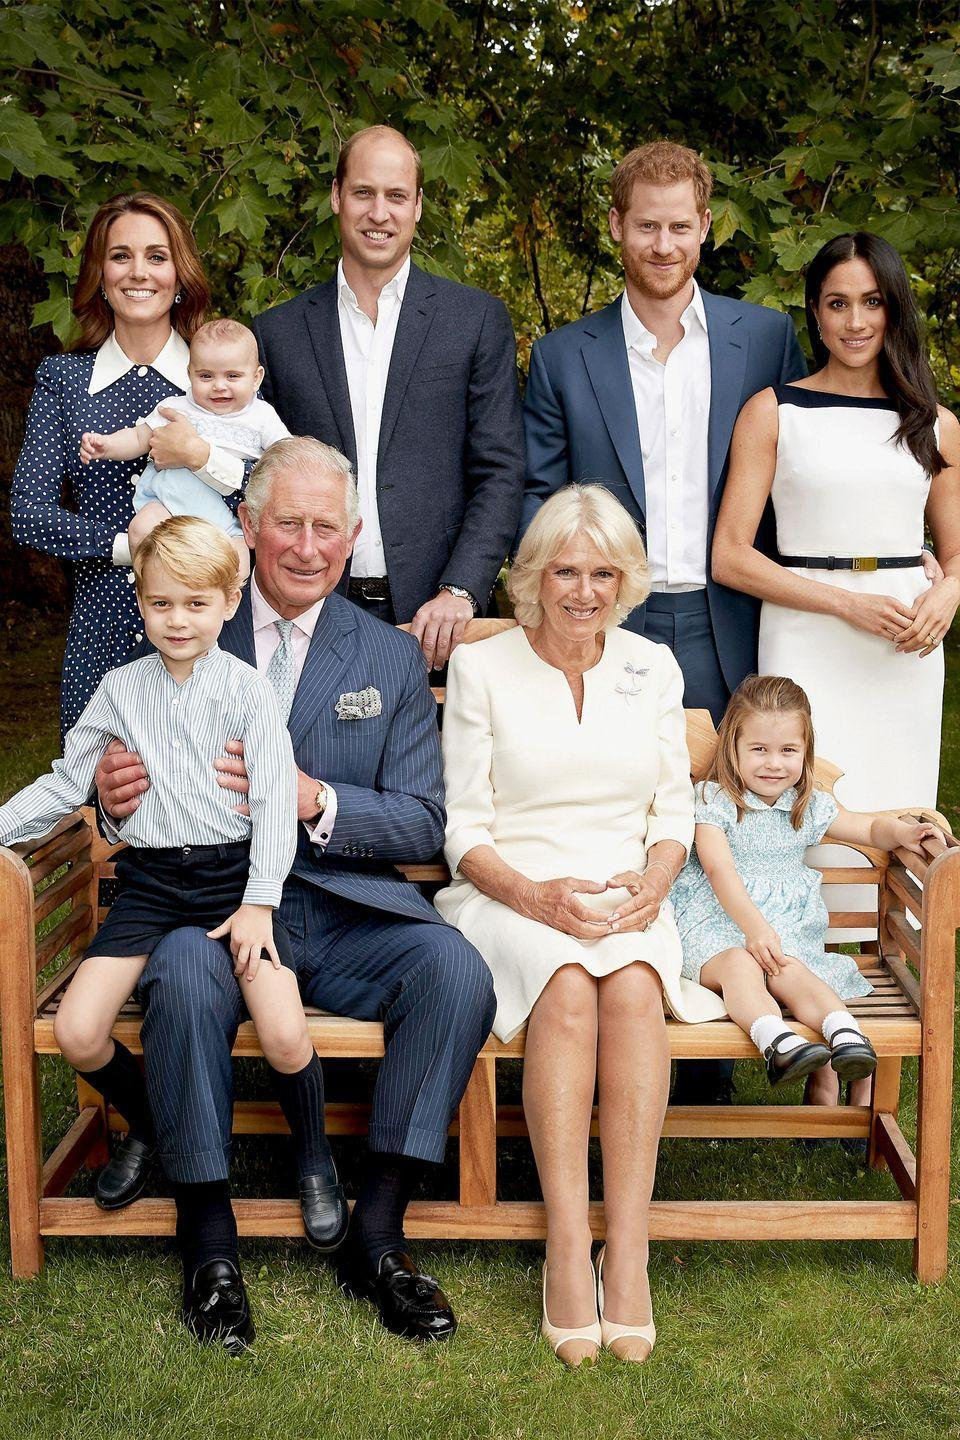 "<p>In honor of Prince Charles's 70th birthday, the royal family <a href=""https://www.harpersbazaar.com/celebrity/latest/a25046402/prince-charles-70th-birthday-portraits/"" rel=""nofollow noopener"" target=""_blank"" data-ylk=""slk:posed"" class=""link rapid-noclick-resp"">posed</a> in a series of stunning portraits at the Clarence House gardens. Prince George, Princess Charlotte, and Prince Louis steal the show, of course. </p>"